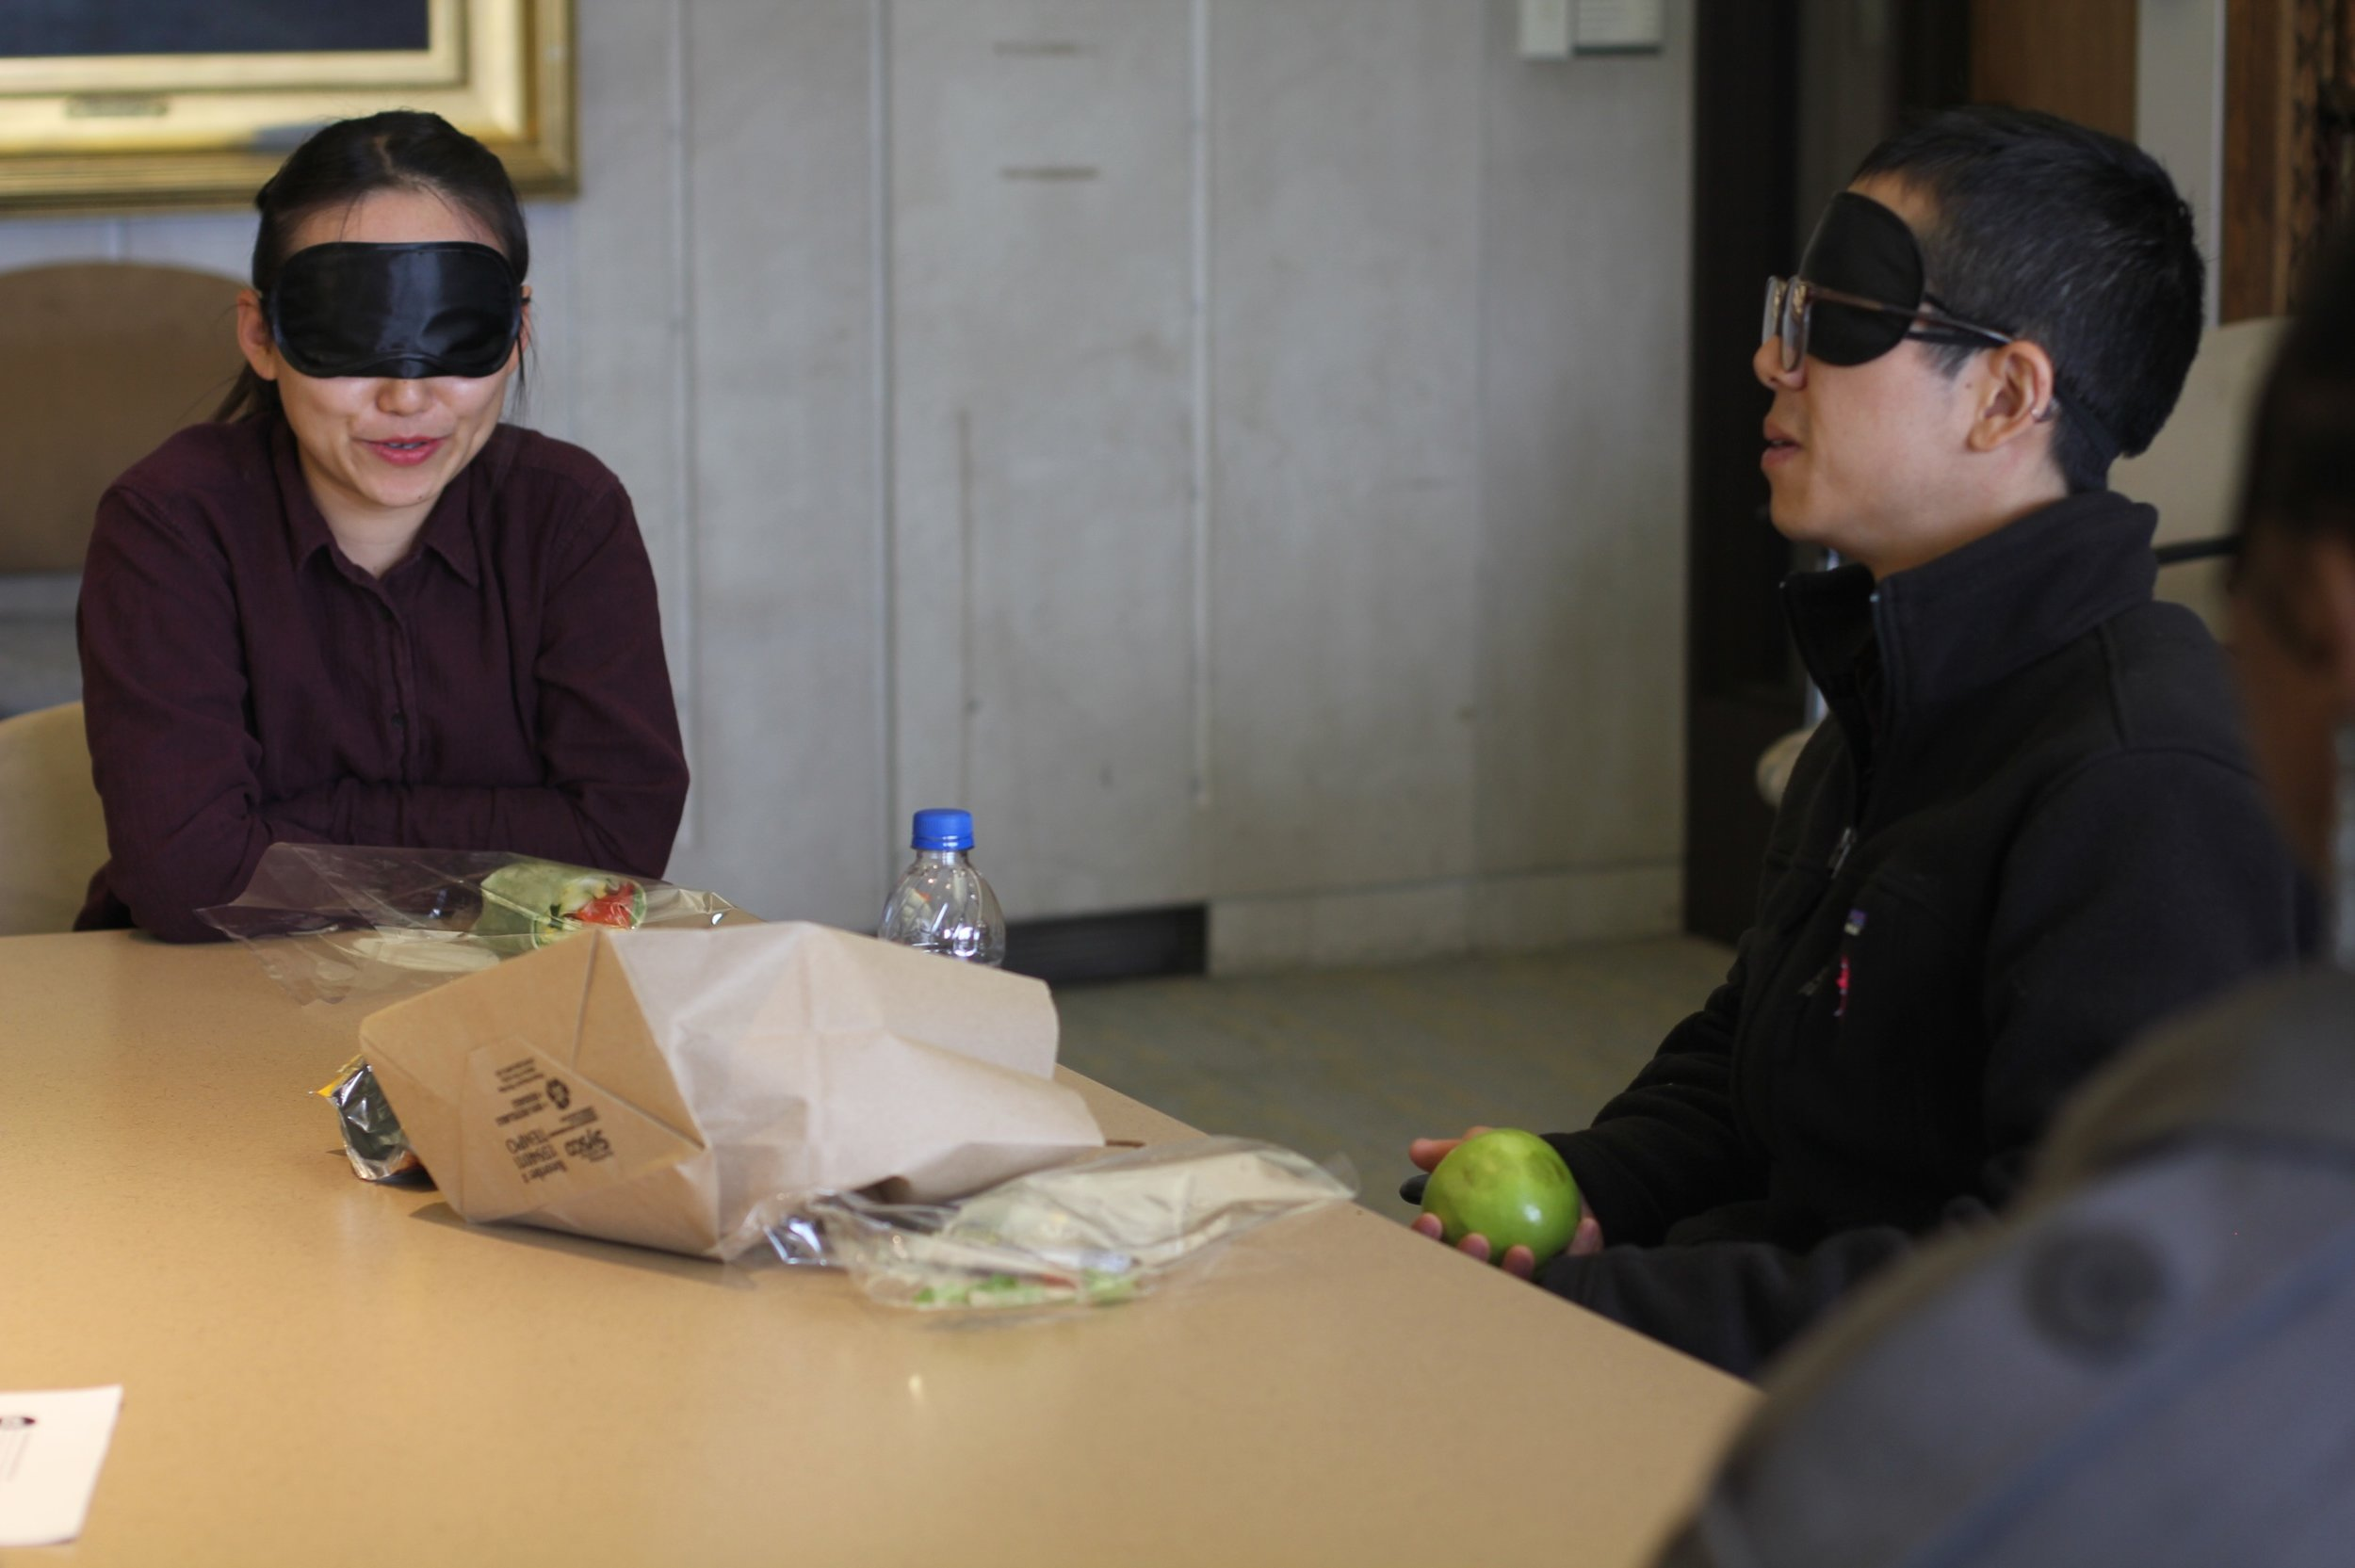 Two blindfolded participants conversing while eating at a table